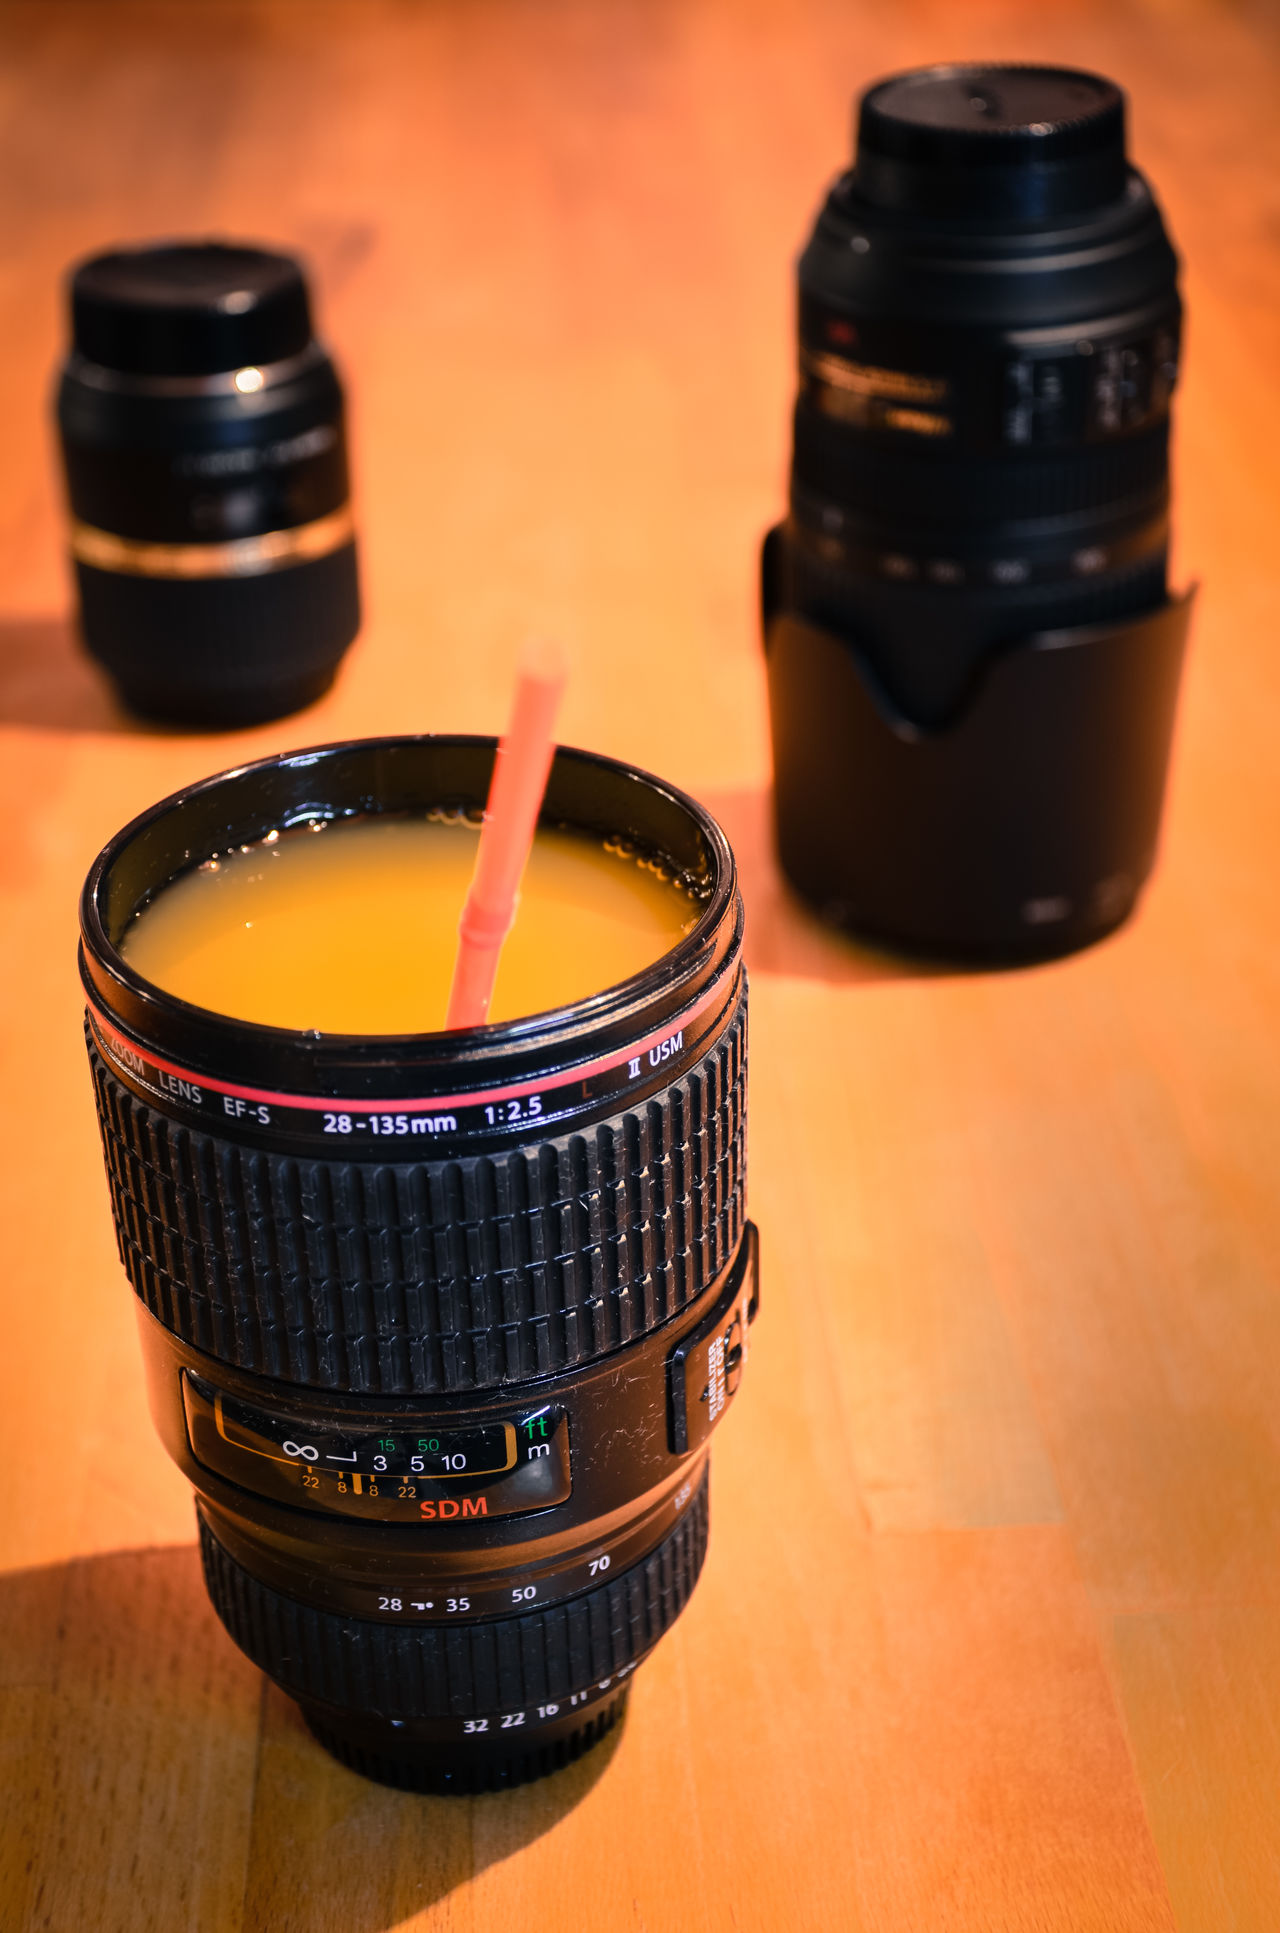 Close-up Drink Focus On Foreground Fun Illuminated Lens Lenses No People Orange Juice  Passion Photography Material Selective Focus Still Life Lieblingsteil